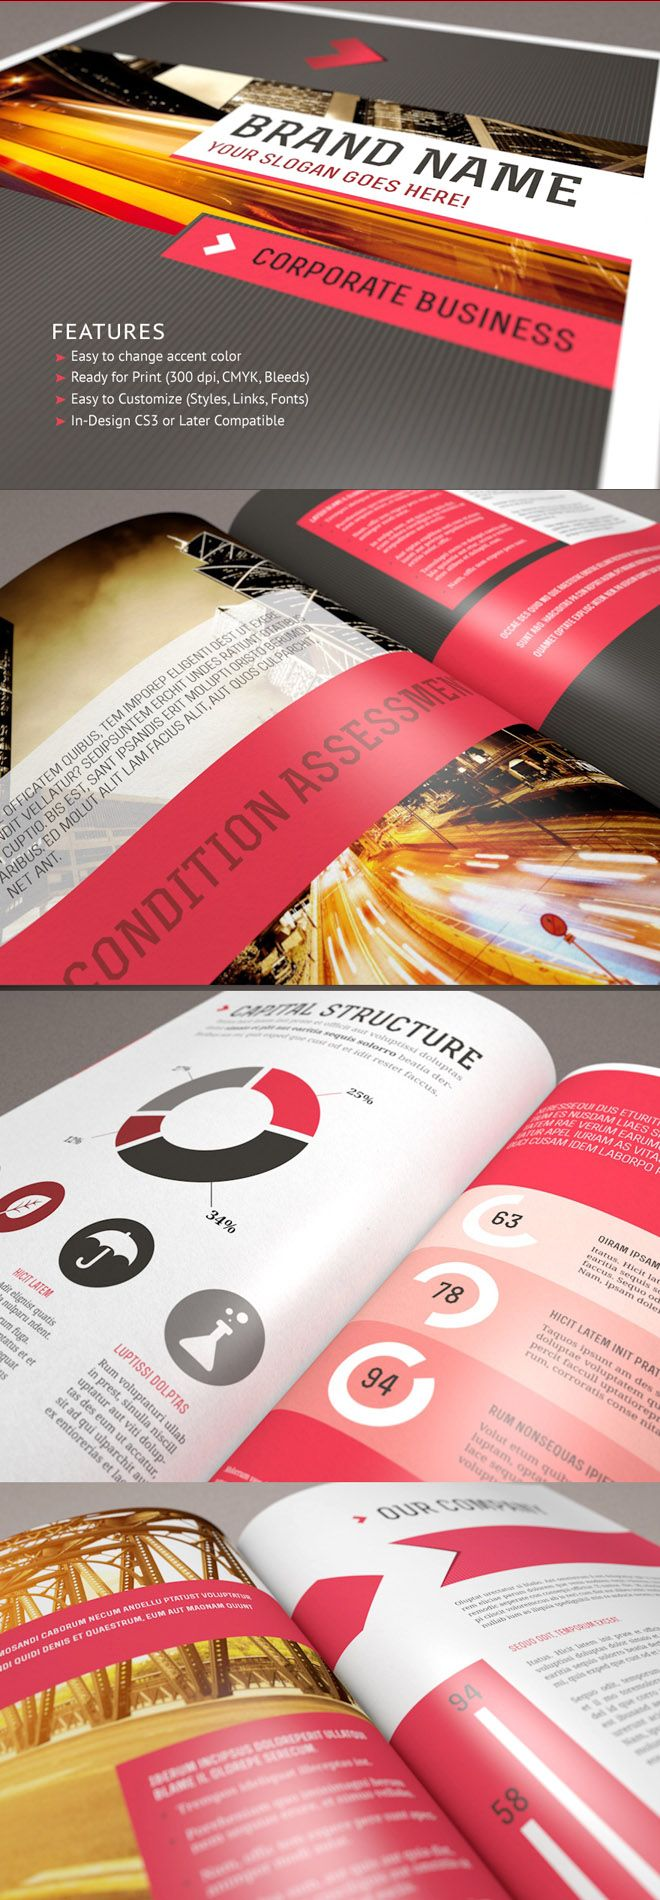 Design ideas ltd springfield il - 26 Best And Creative Brochure Design Ideas For Your Inspiration